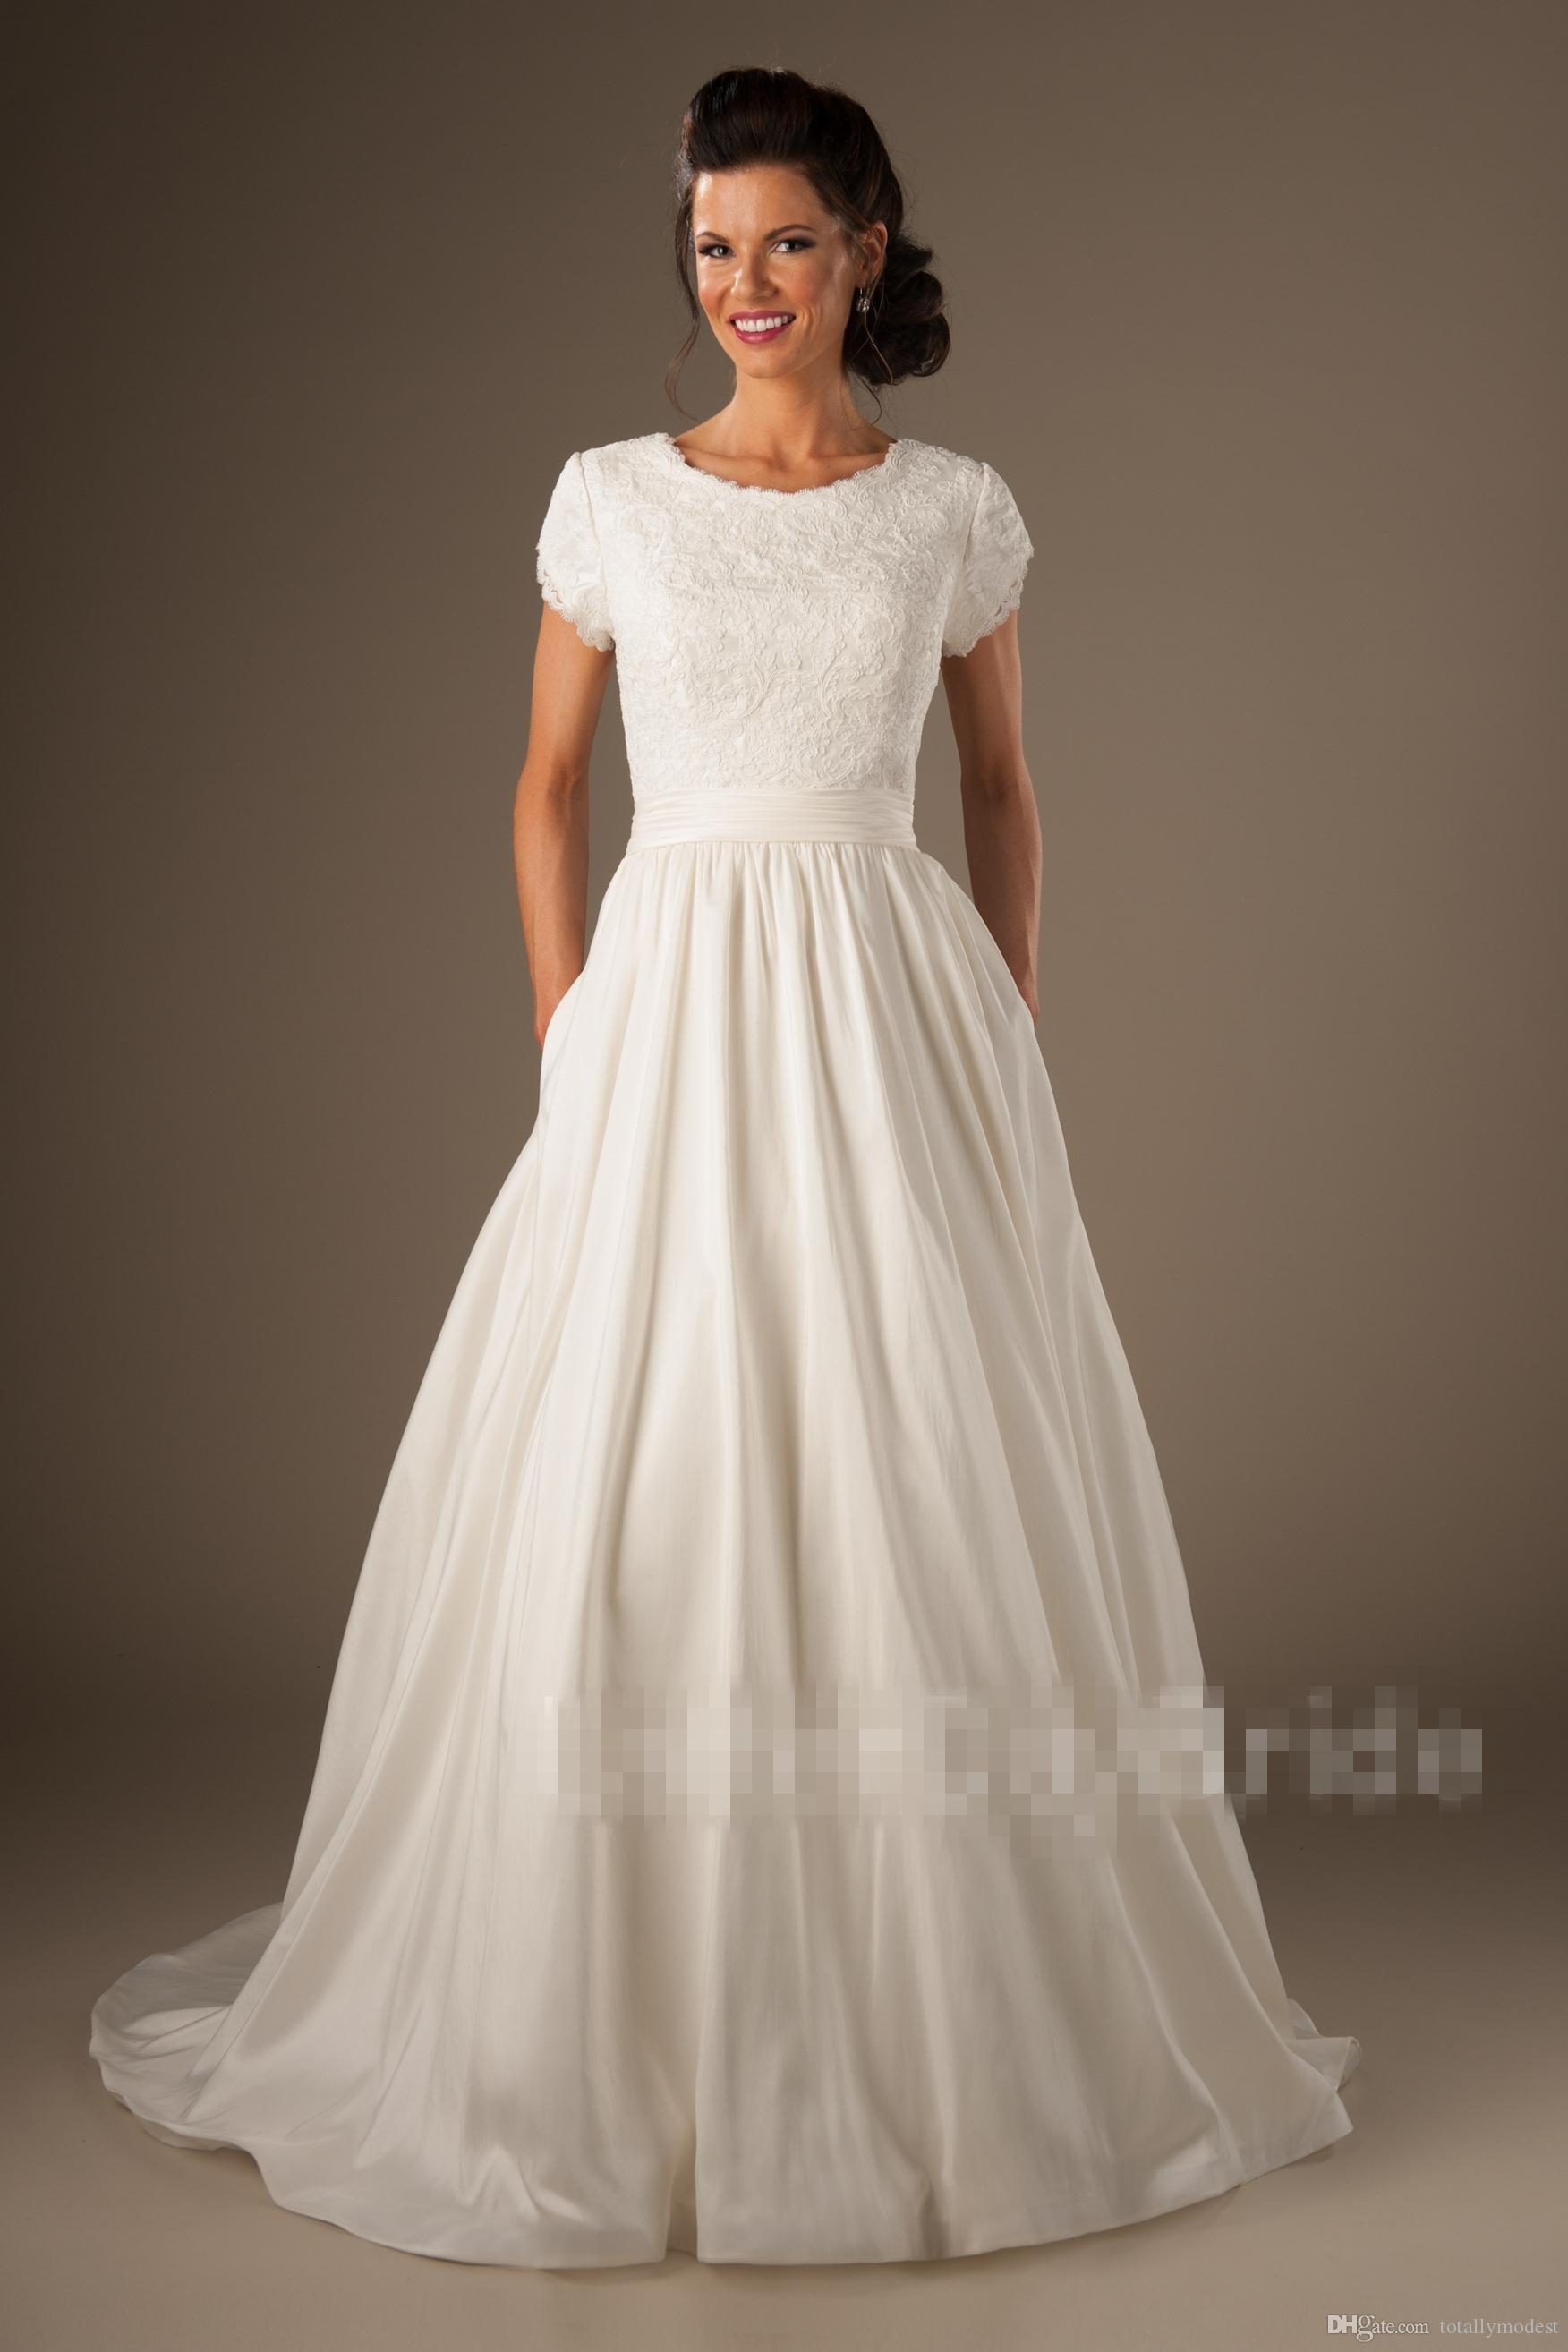 Discount 2017 Country Modest Wedding Dresses Cap Sleeves Jewel O Neck Lace Top Satin Skirt Buttons Back Vintage Simple Bridal Gowns Sleeved Couture Western: Very Modest Wedding Dress At Websimilar.org